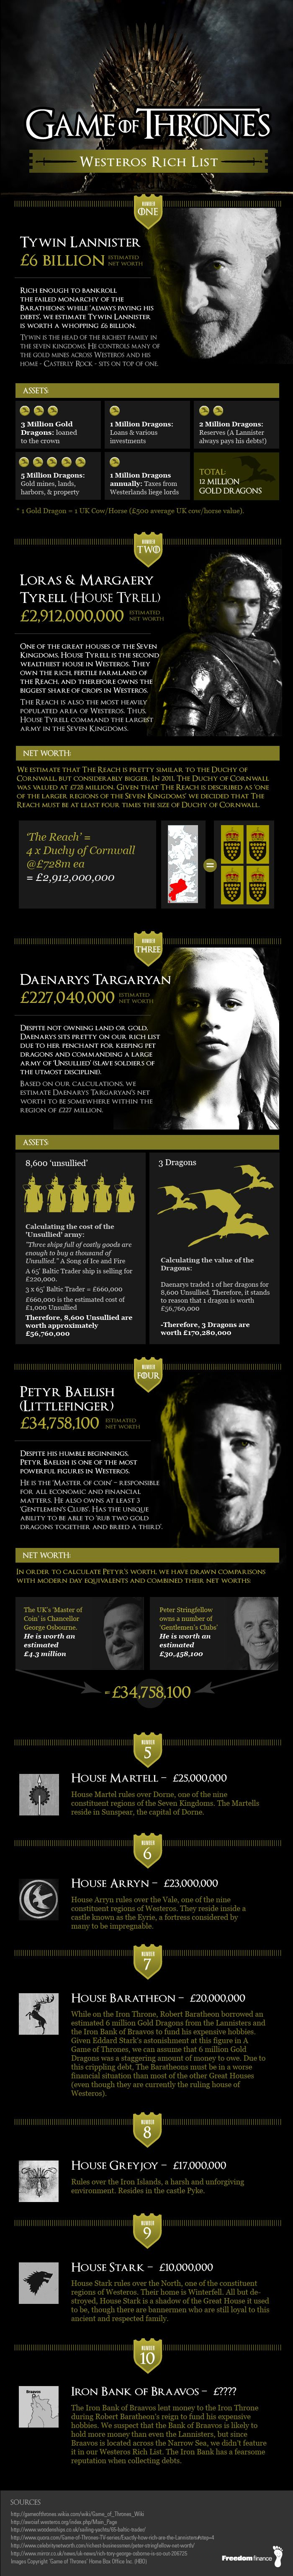 Game of Thrones Infographic: The Westeros Rich List